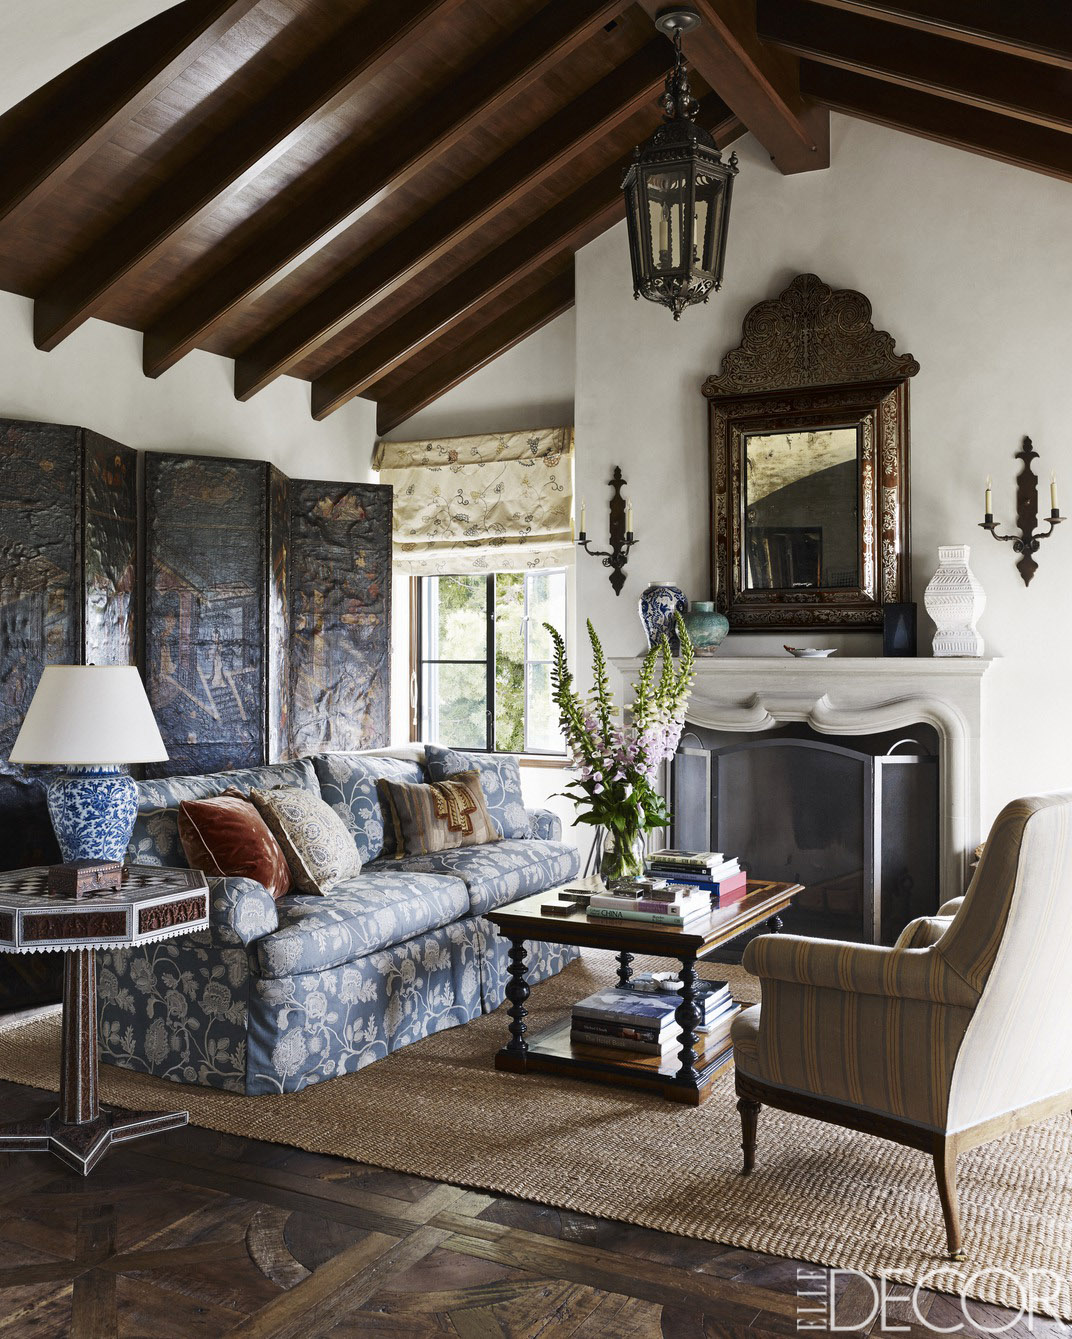 Interior Spanish Style Homes: HOUSE TOUR: A Stunning California Home Inspired By The